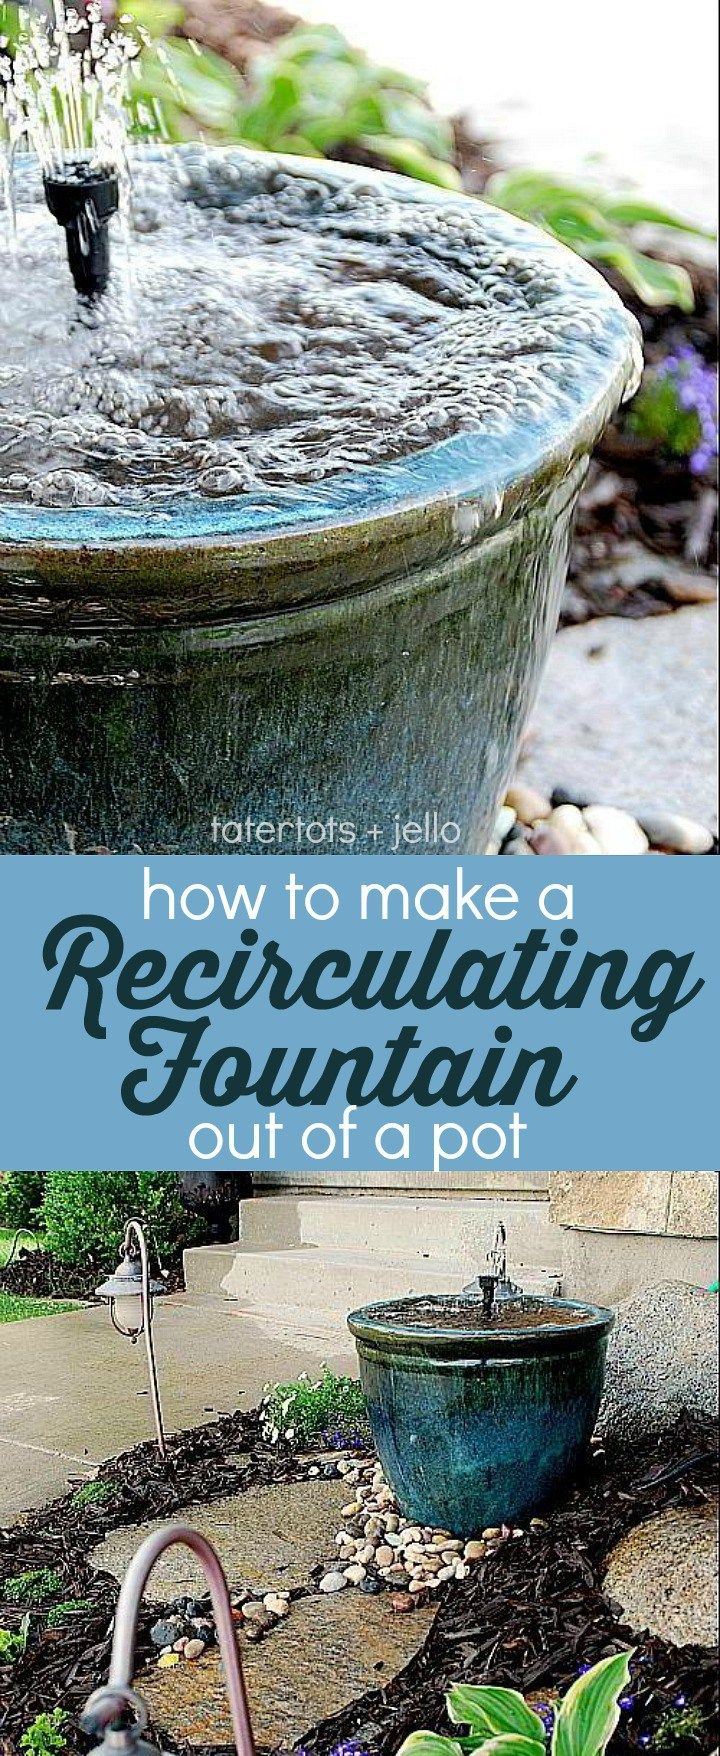 Make a DIY Recirculating Fountain for your yard out of a pot! #waterfeatures